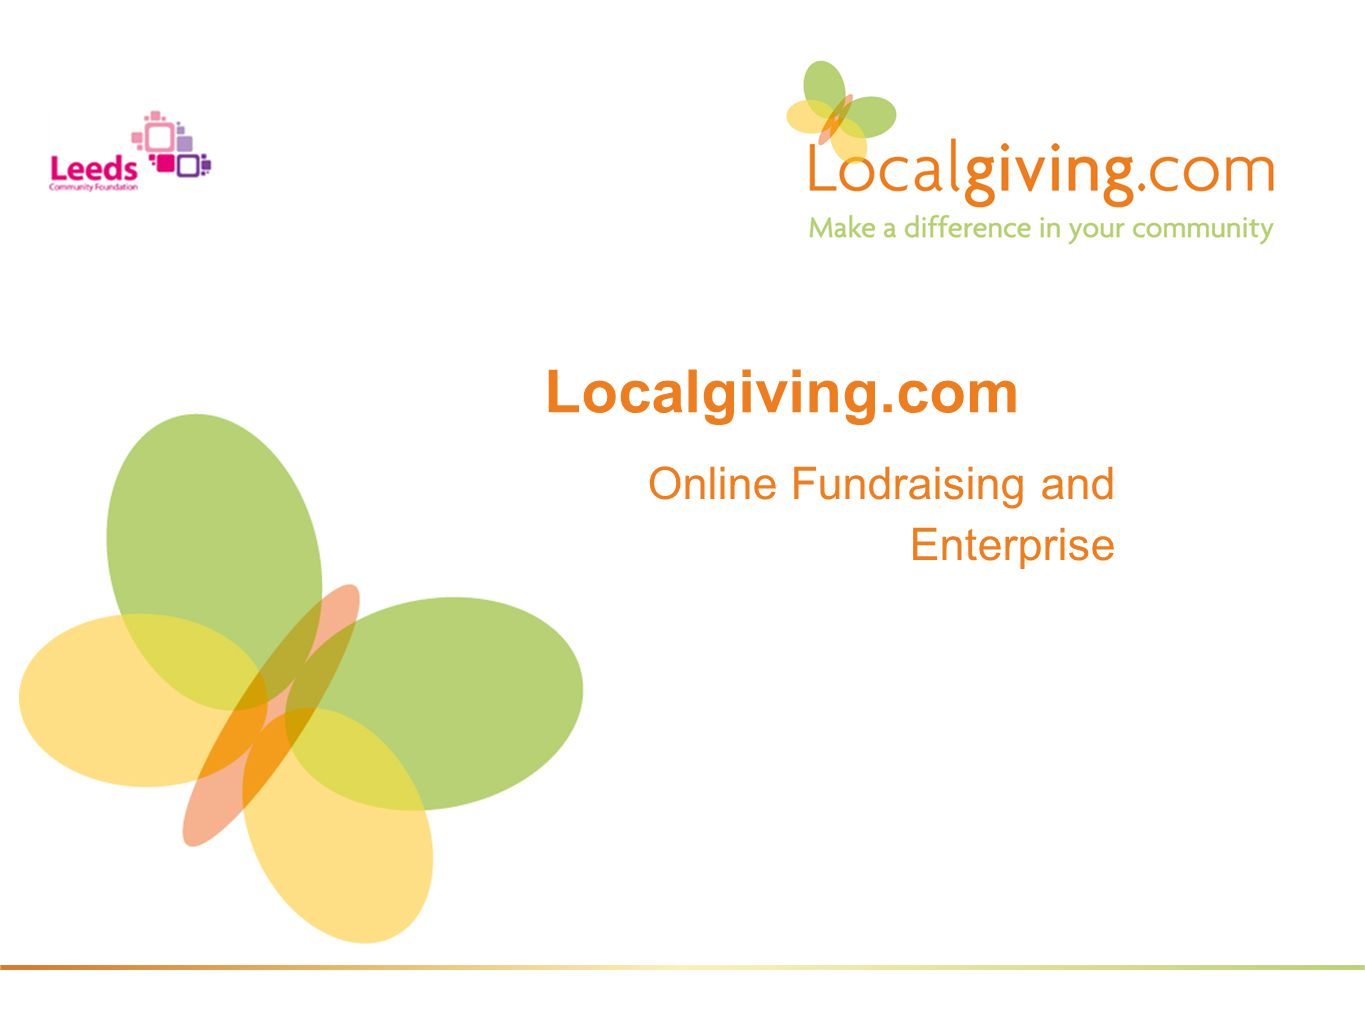 Online Fundraising and Enterprise Localgiving.com